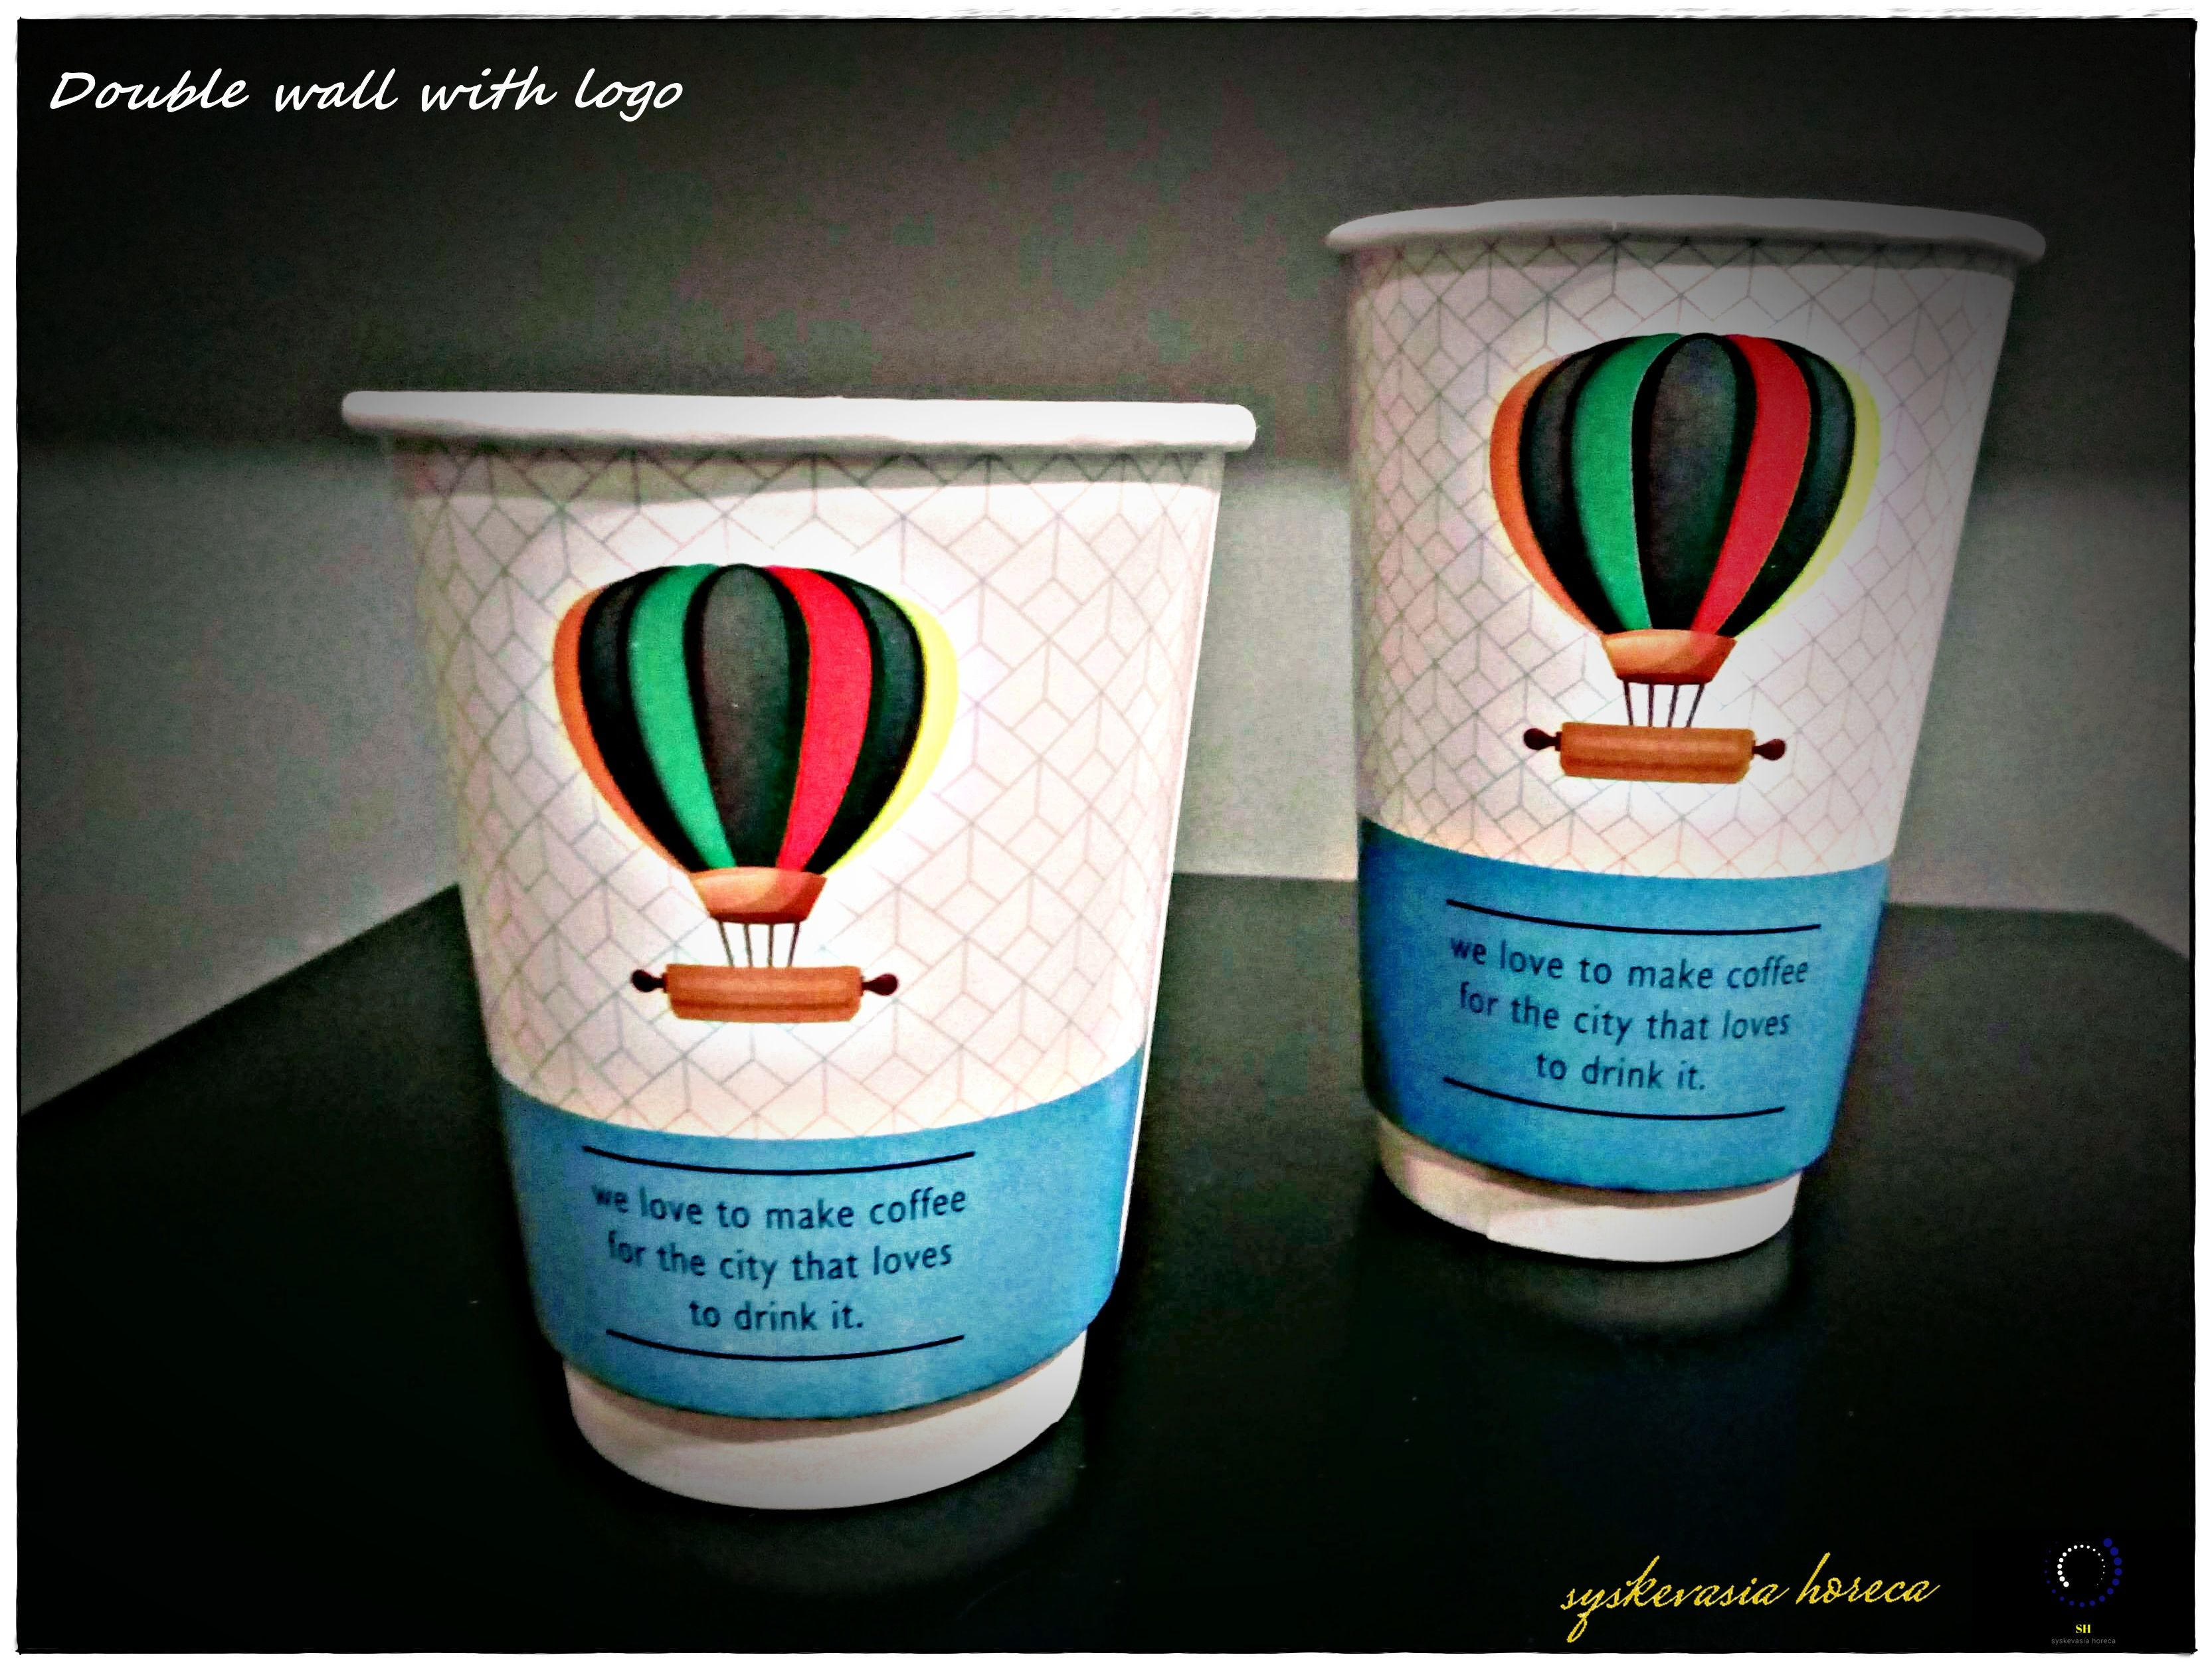 Double Wall Paper Cups With Logo 12oz 16oz Stamatioy Giannhs Mail Ioannistamatiou Gmail Com Www Facebook Com Yiannistama Paper Cup Double Walled Glassware